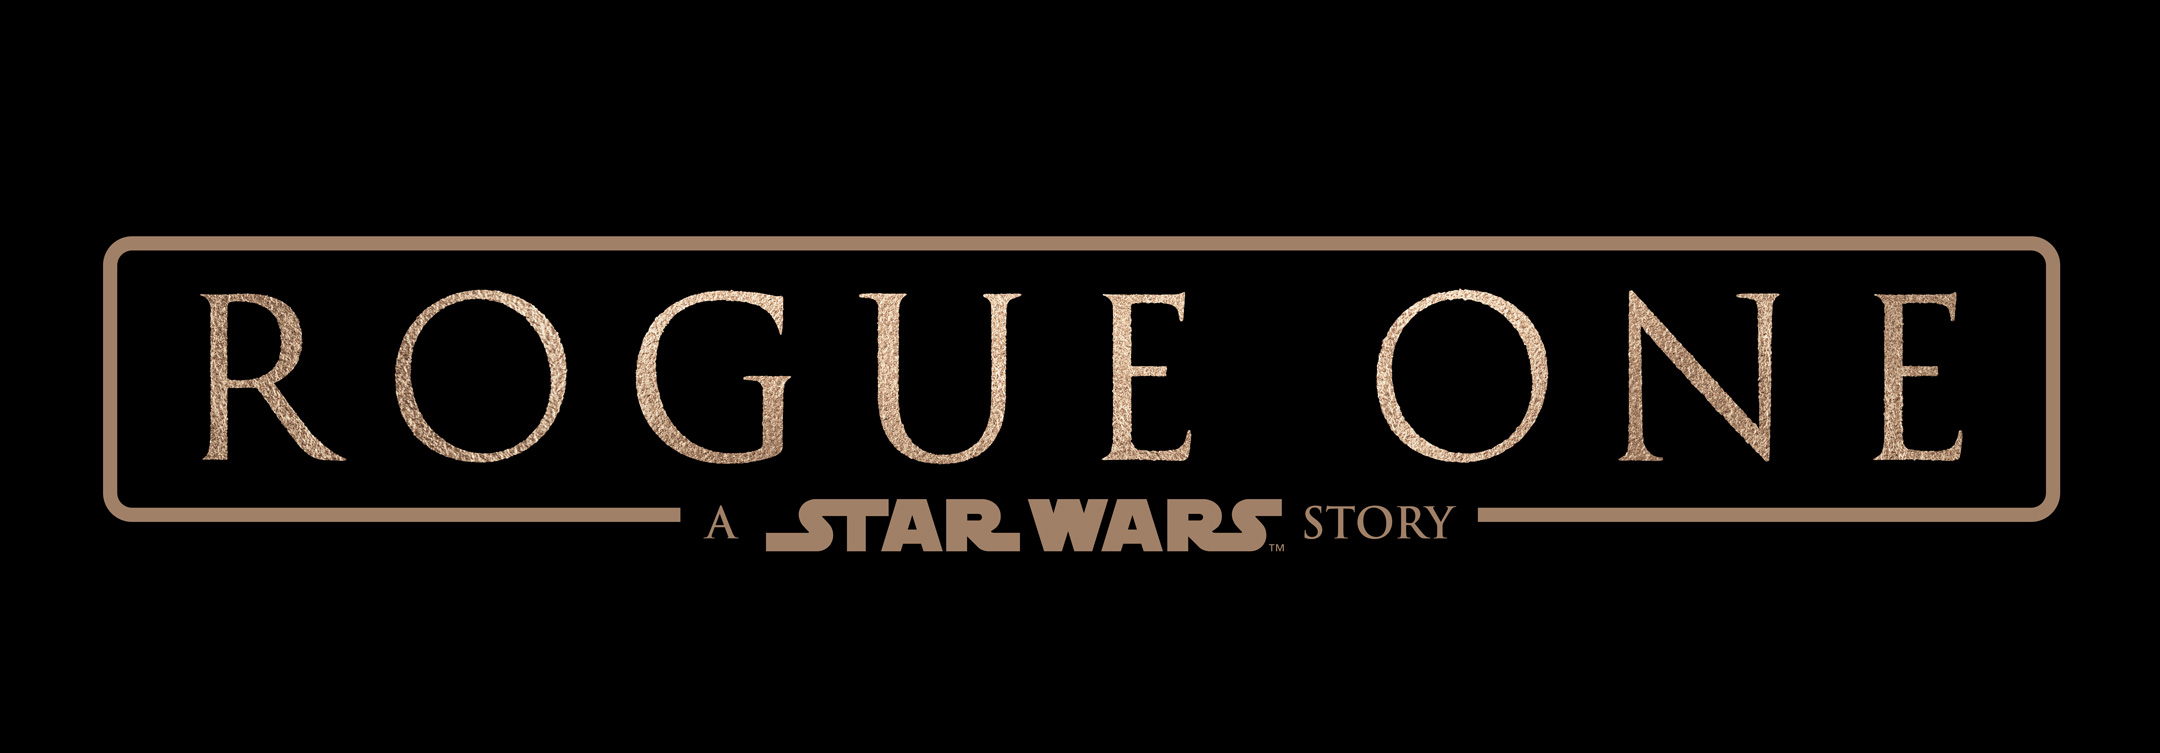 rogue-one-title-treatment